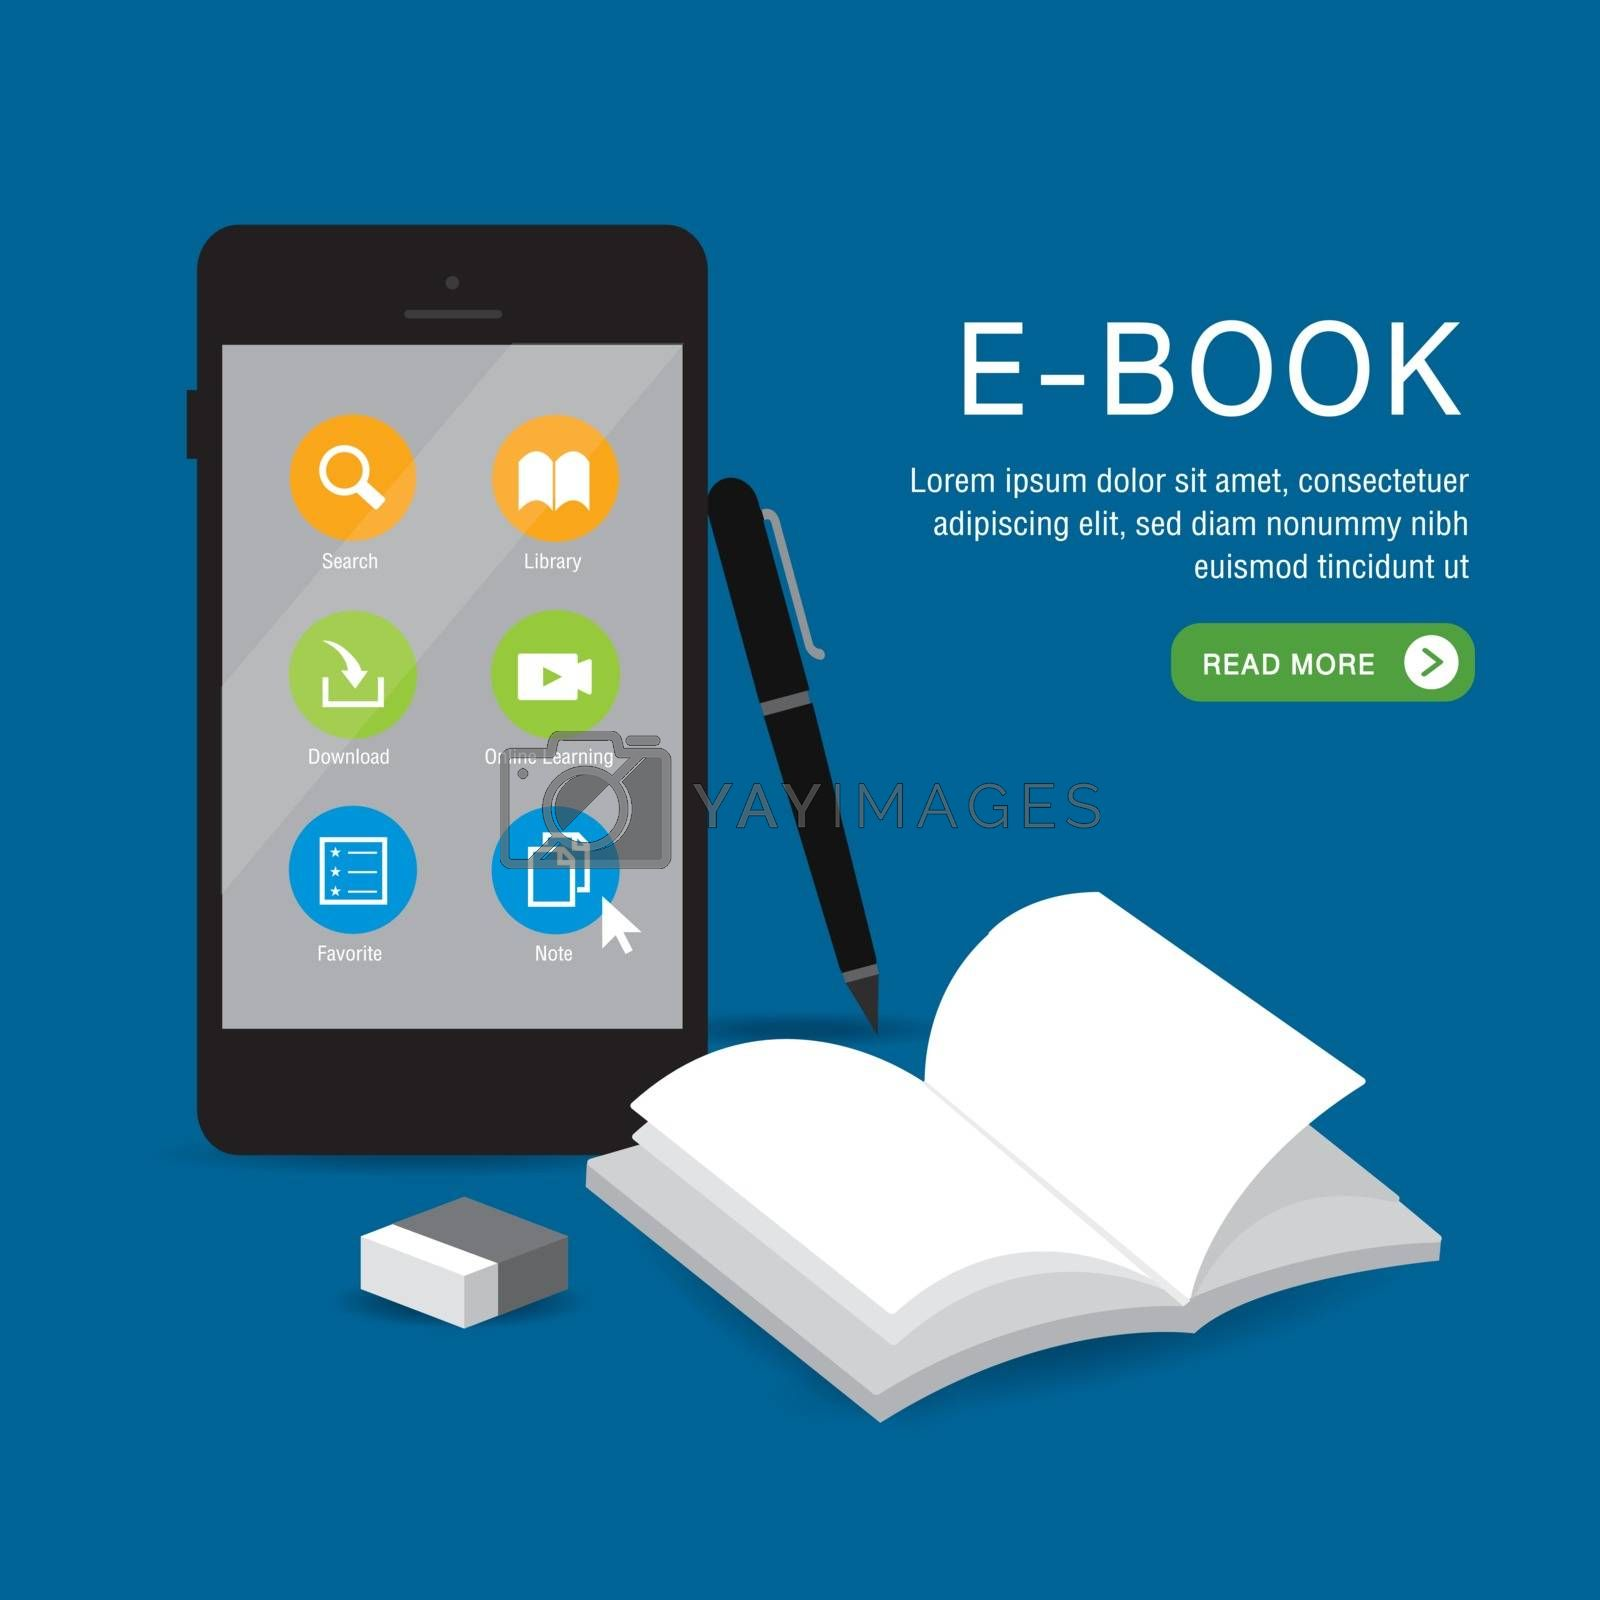 E-book Online Education Application learning on phone, mobile, website. With blank book cover white paper open on background. Vector illustration.